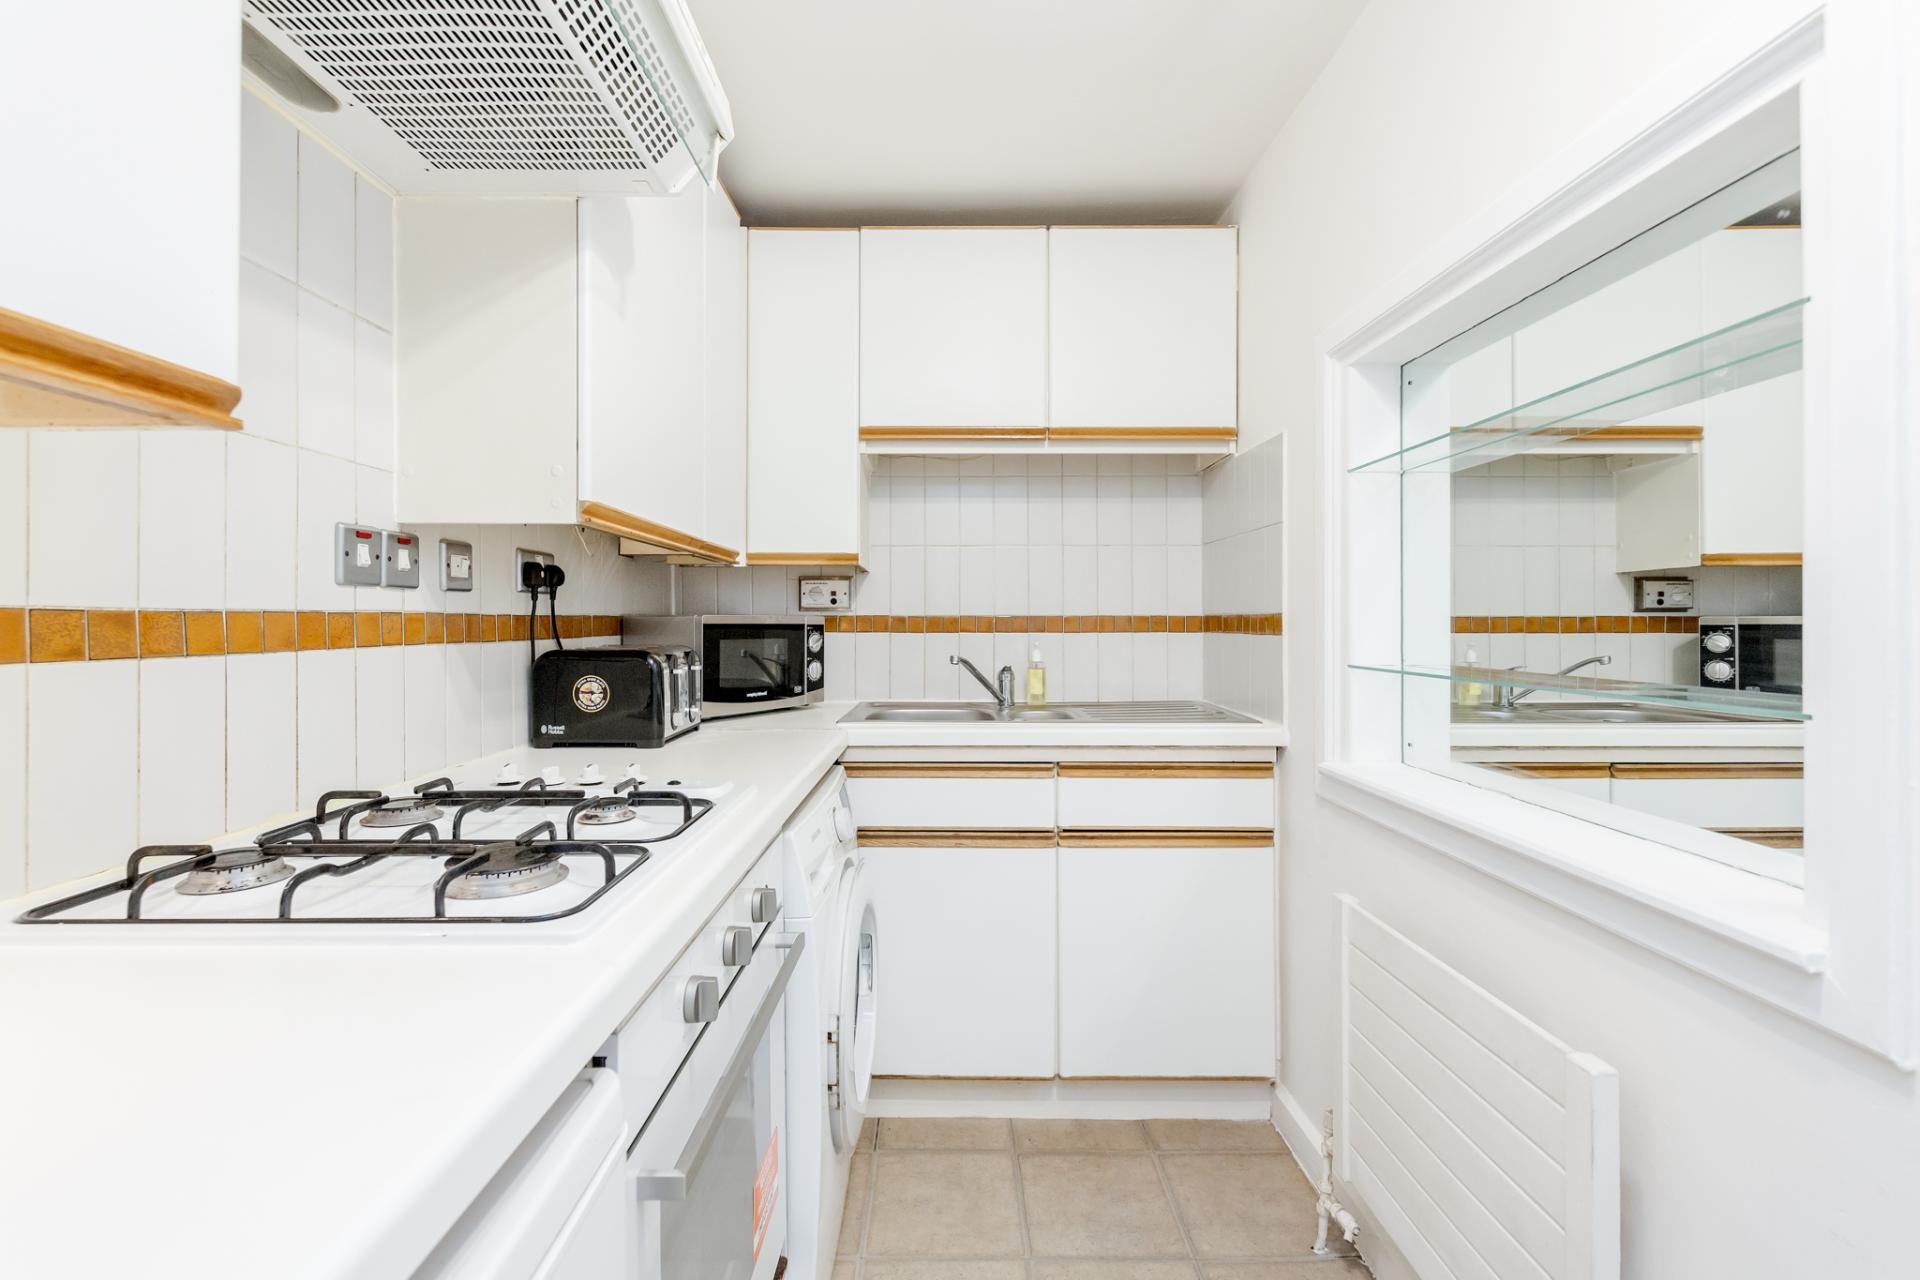 Kitchen at Earls Court Serviced Apartment, Kensington, London - Citybase Apartments